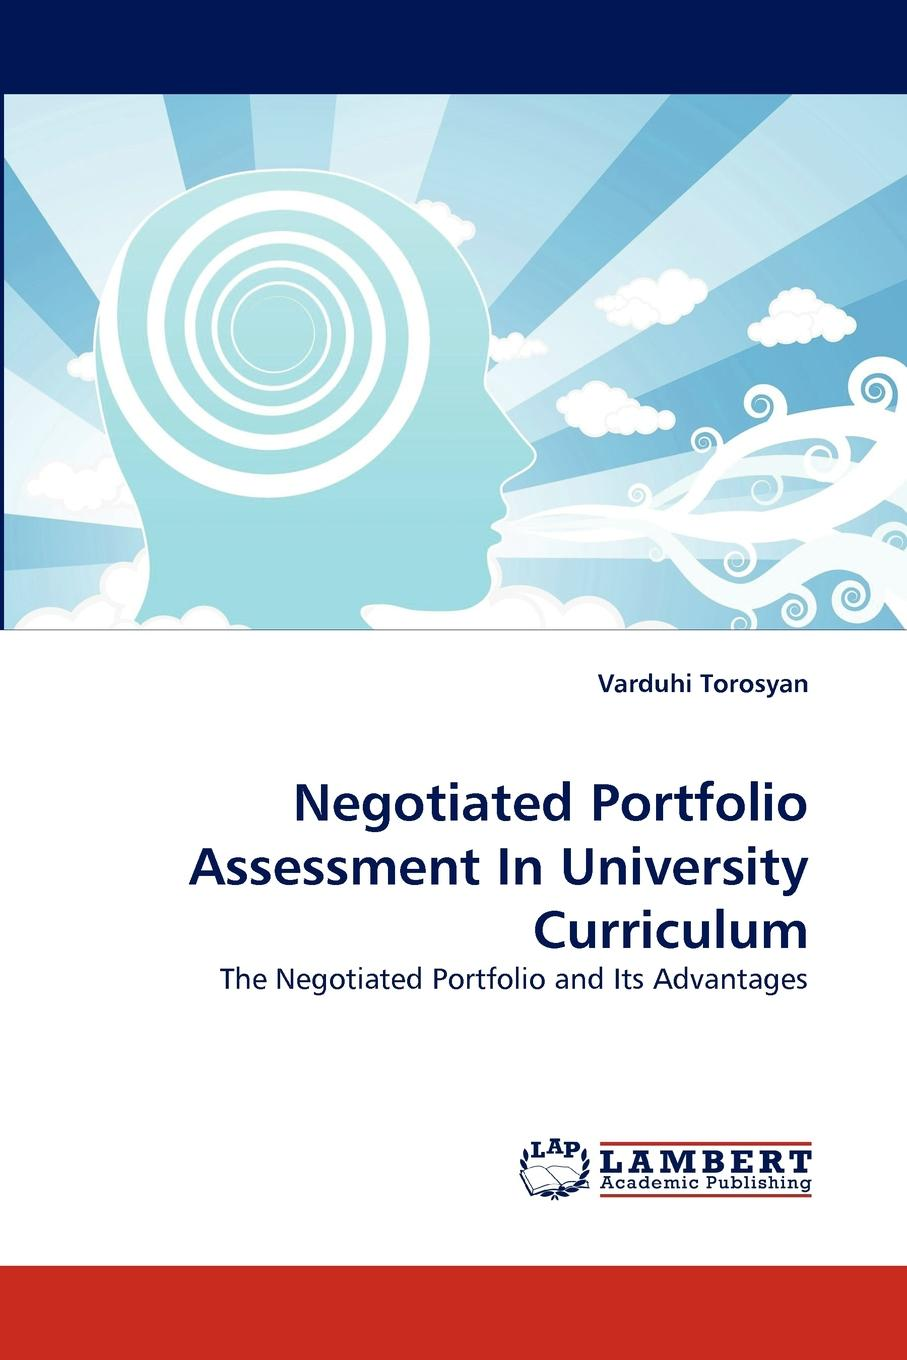 Varduhi Torosyan Negotiated Portfolio Assessment in University Curriculum motivation and action